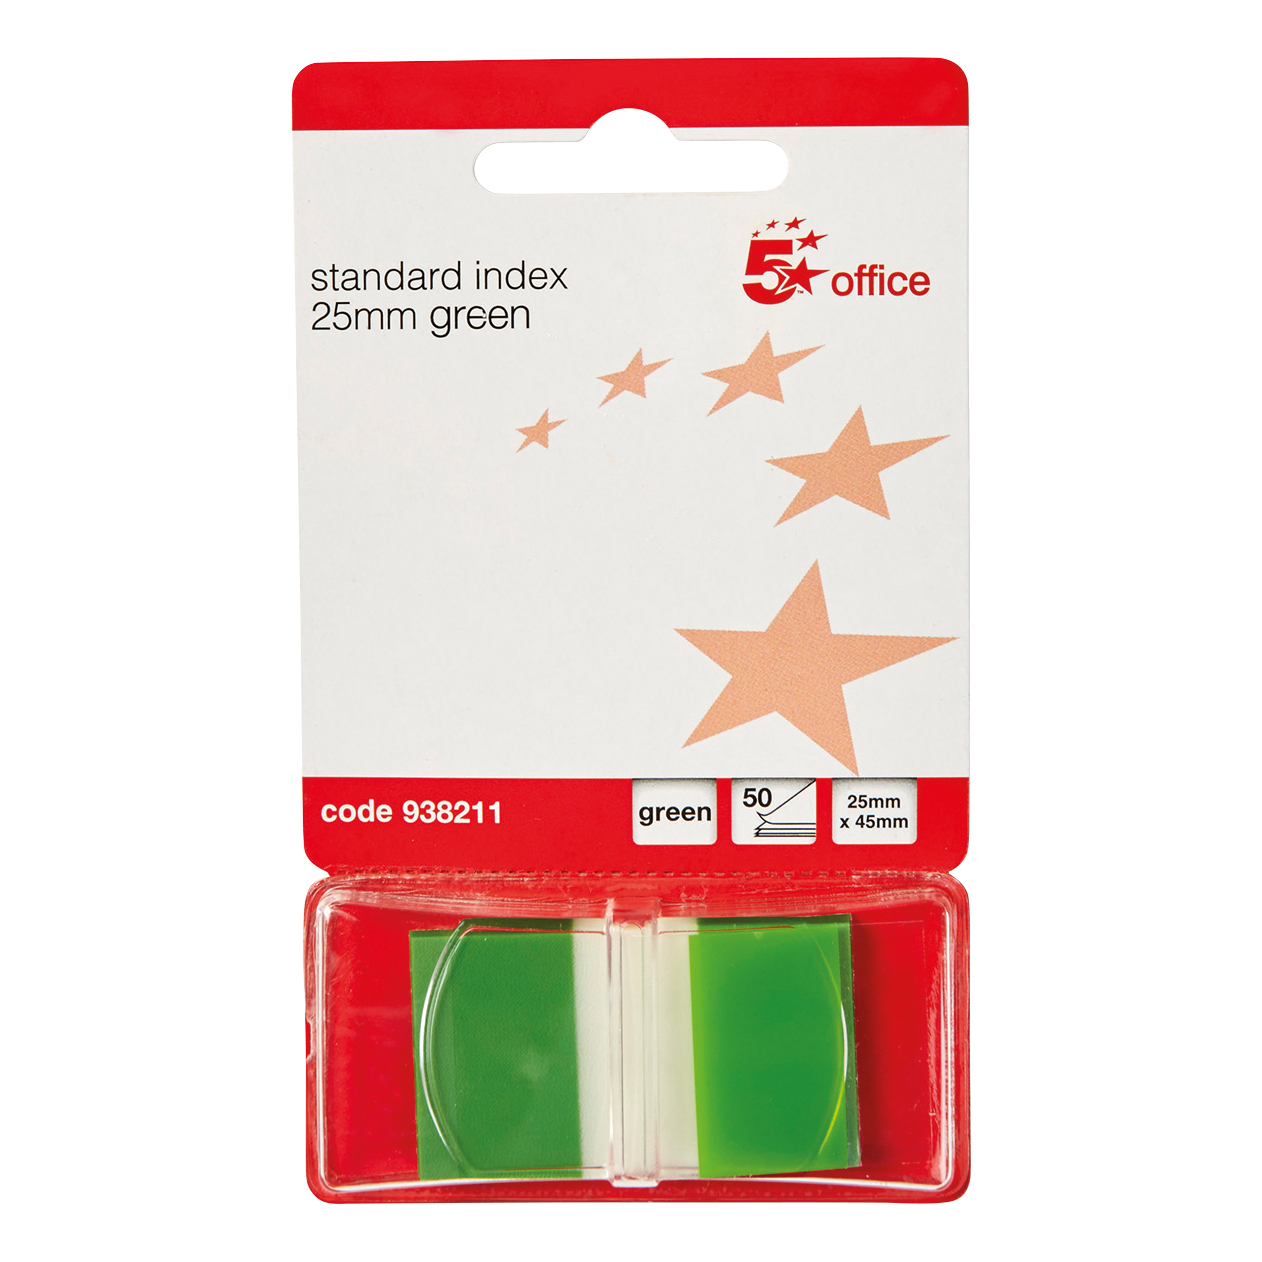 Tabs 5 Star Office Standard Index Flags 50 Sheets per Pad 25x45mm Green Pack 5